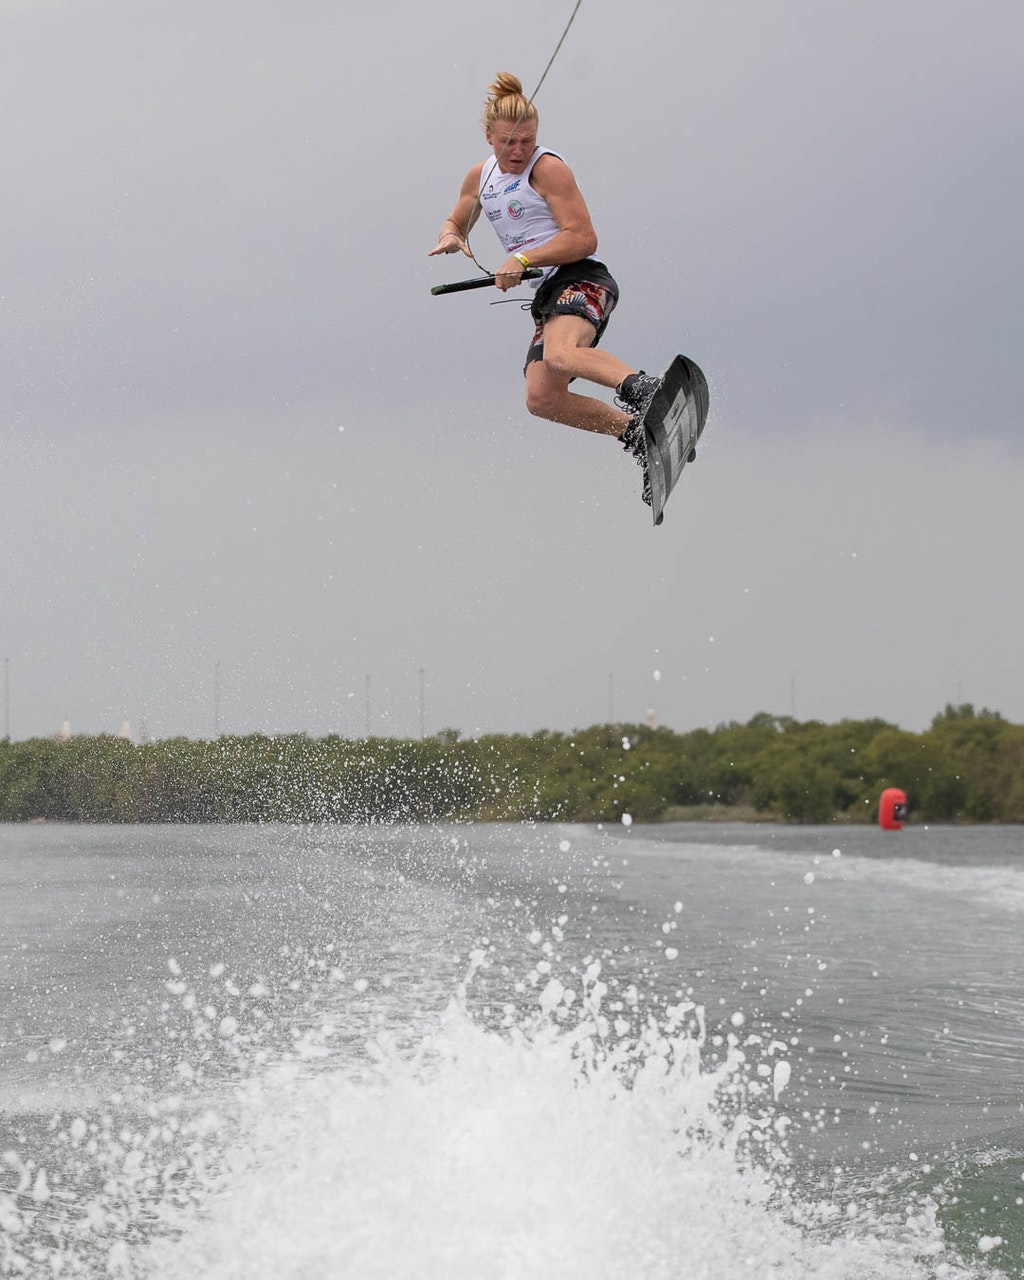 Luca Kidd, TeamGB 🇬🇧, at the 2019 Worlds in Abu Dhabi